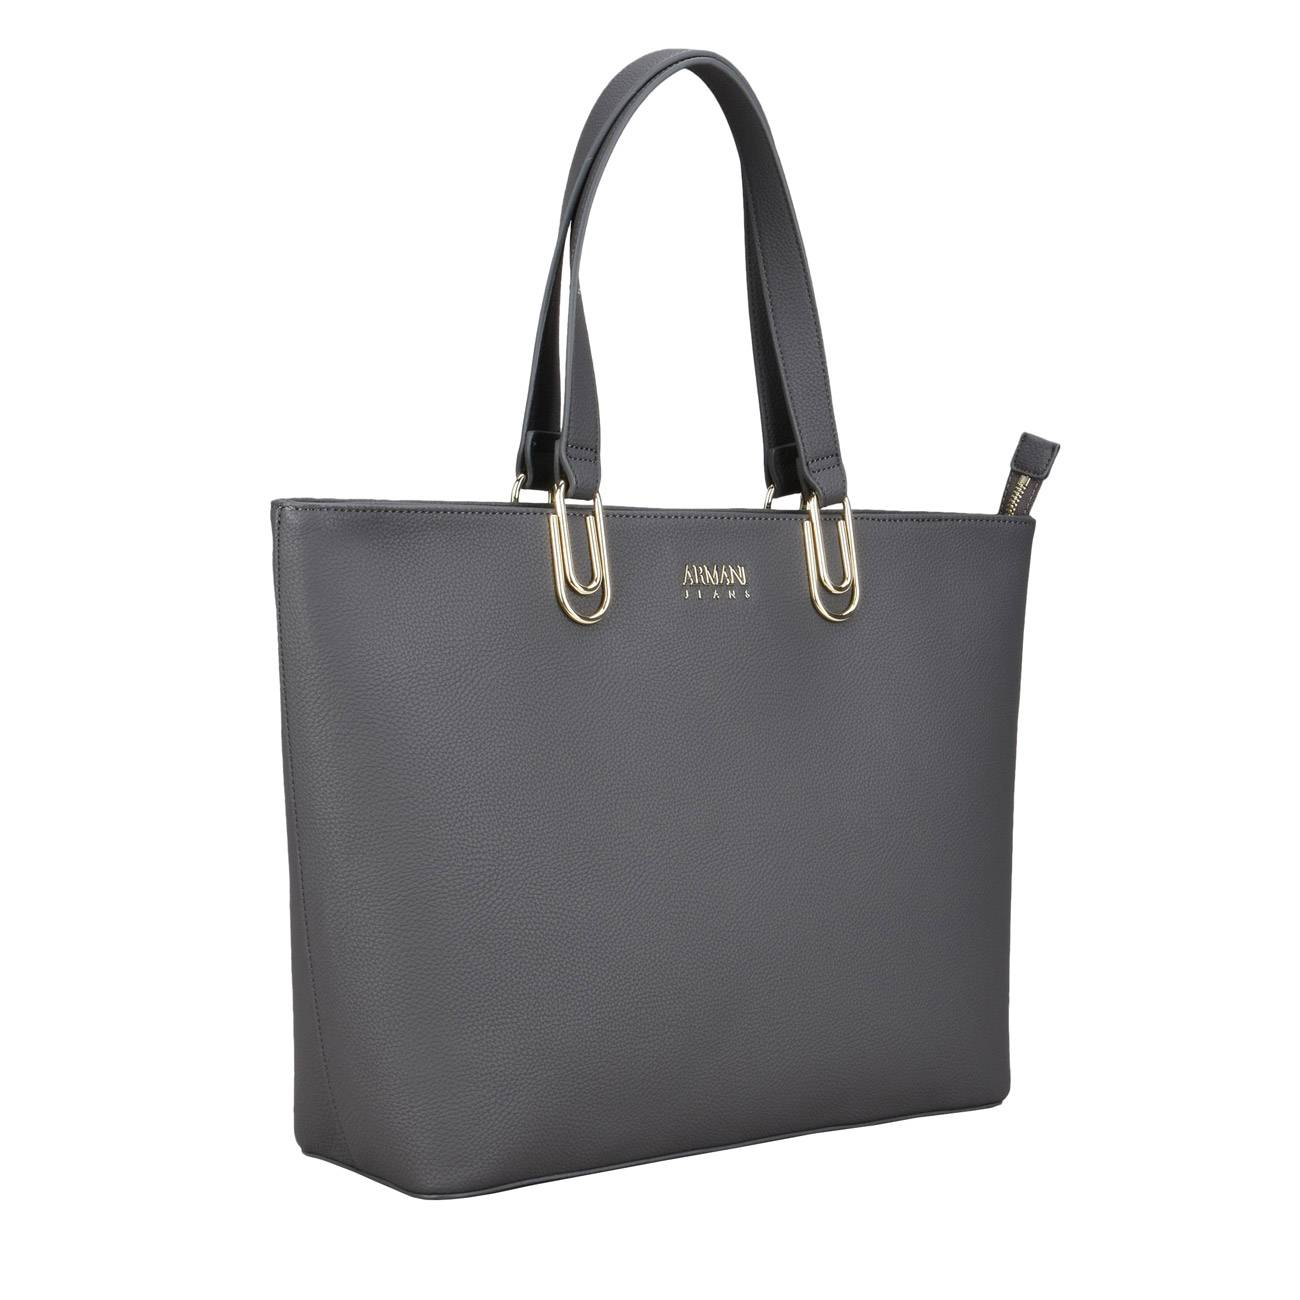 ANTHRACITE SHOPPER BAG